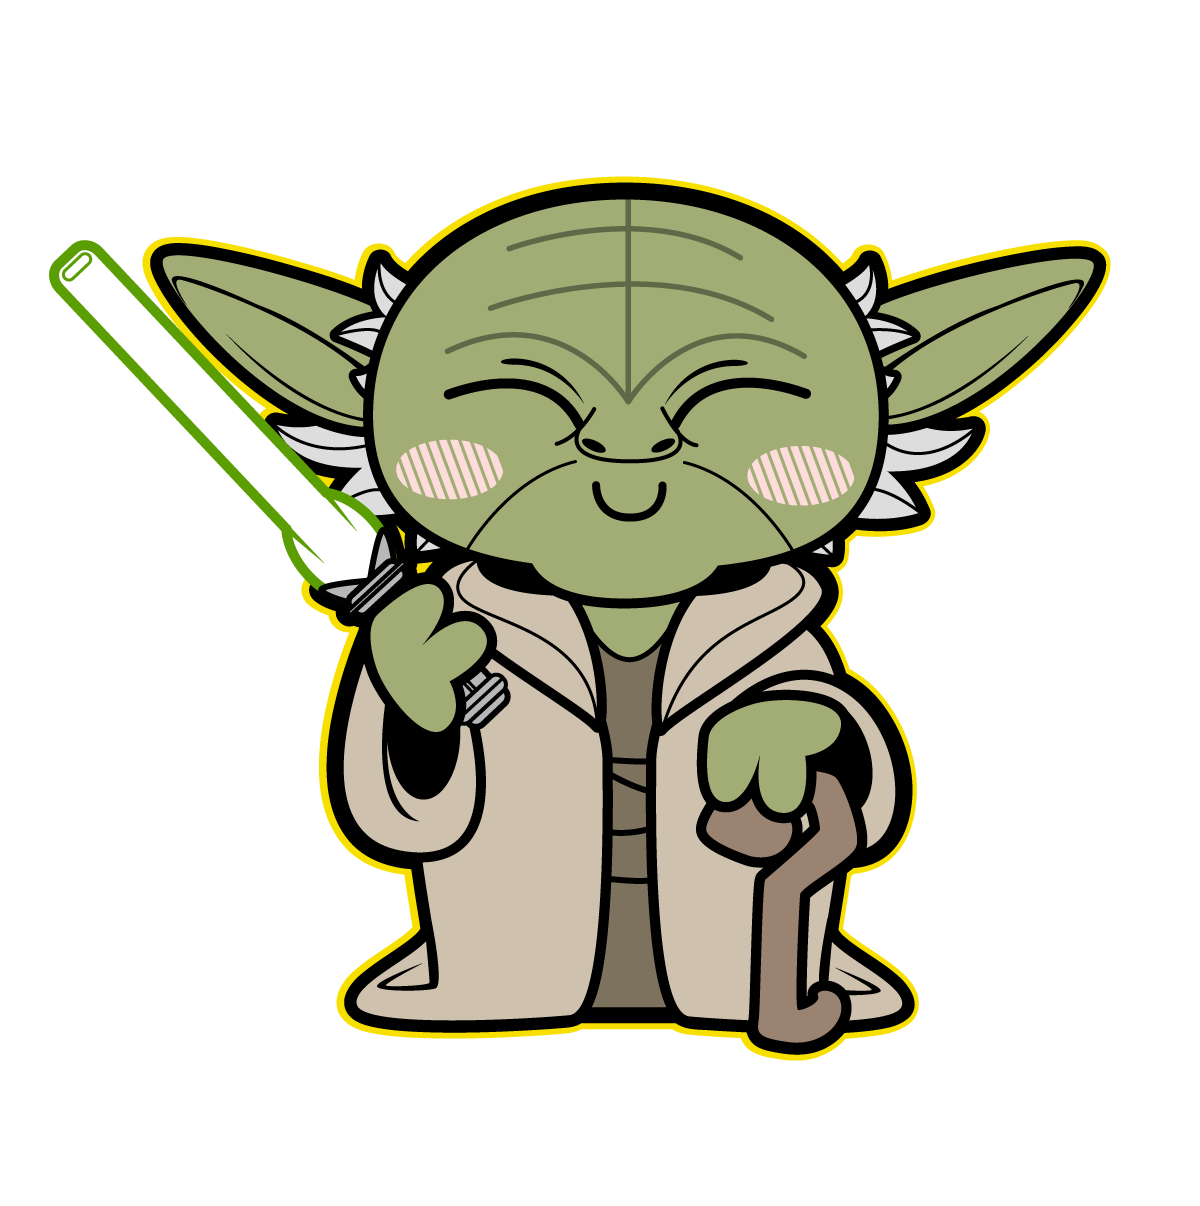 Star wars yoda clipart picture transparent download yoda | TieFighters | Star Wars | Pinterest | Star, Starwars and Chibi picture transparent download